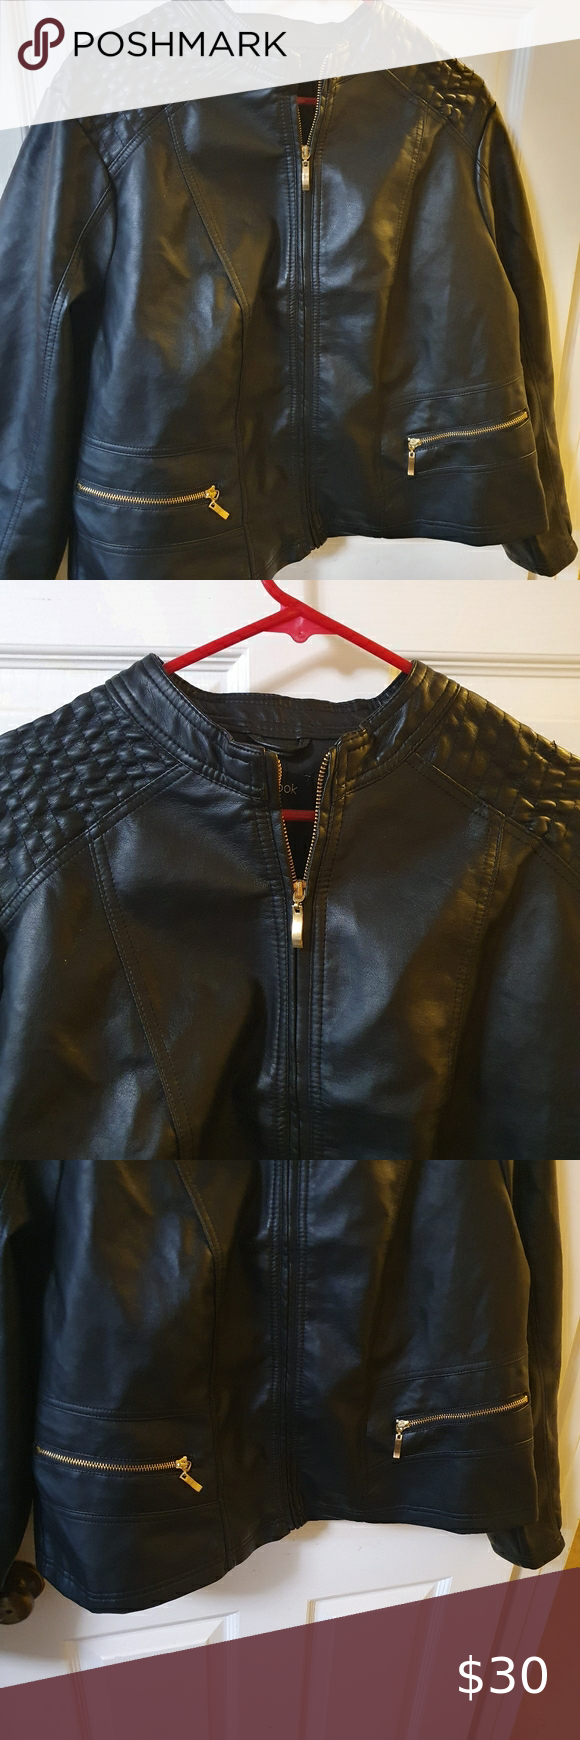 New Look Faux Leather Jacket Leather Jacket New Look Leather Jacket New Look Jackets [ 1740 x 580 Pixel ]